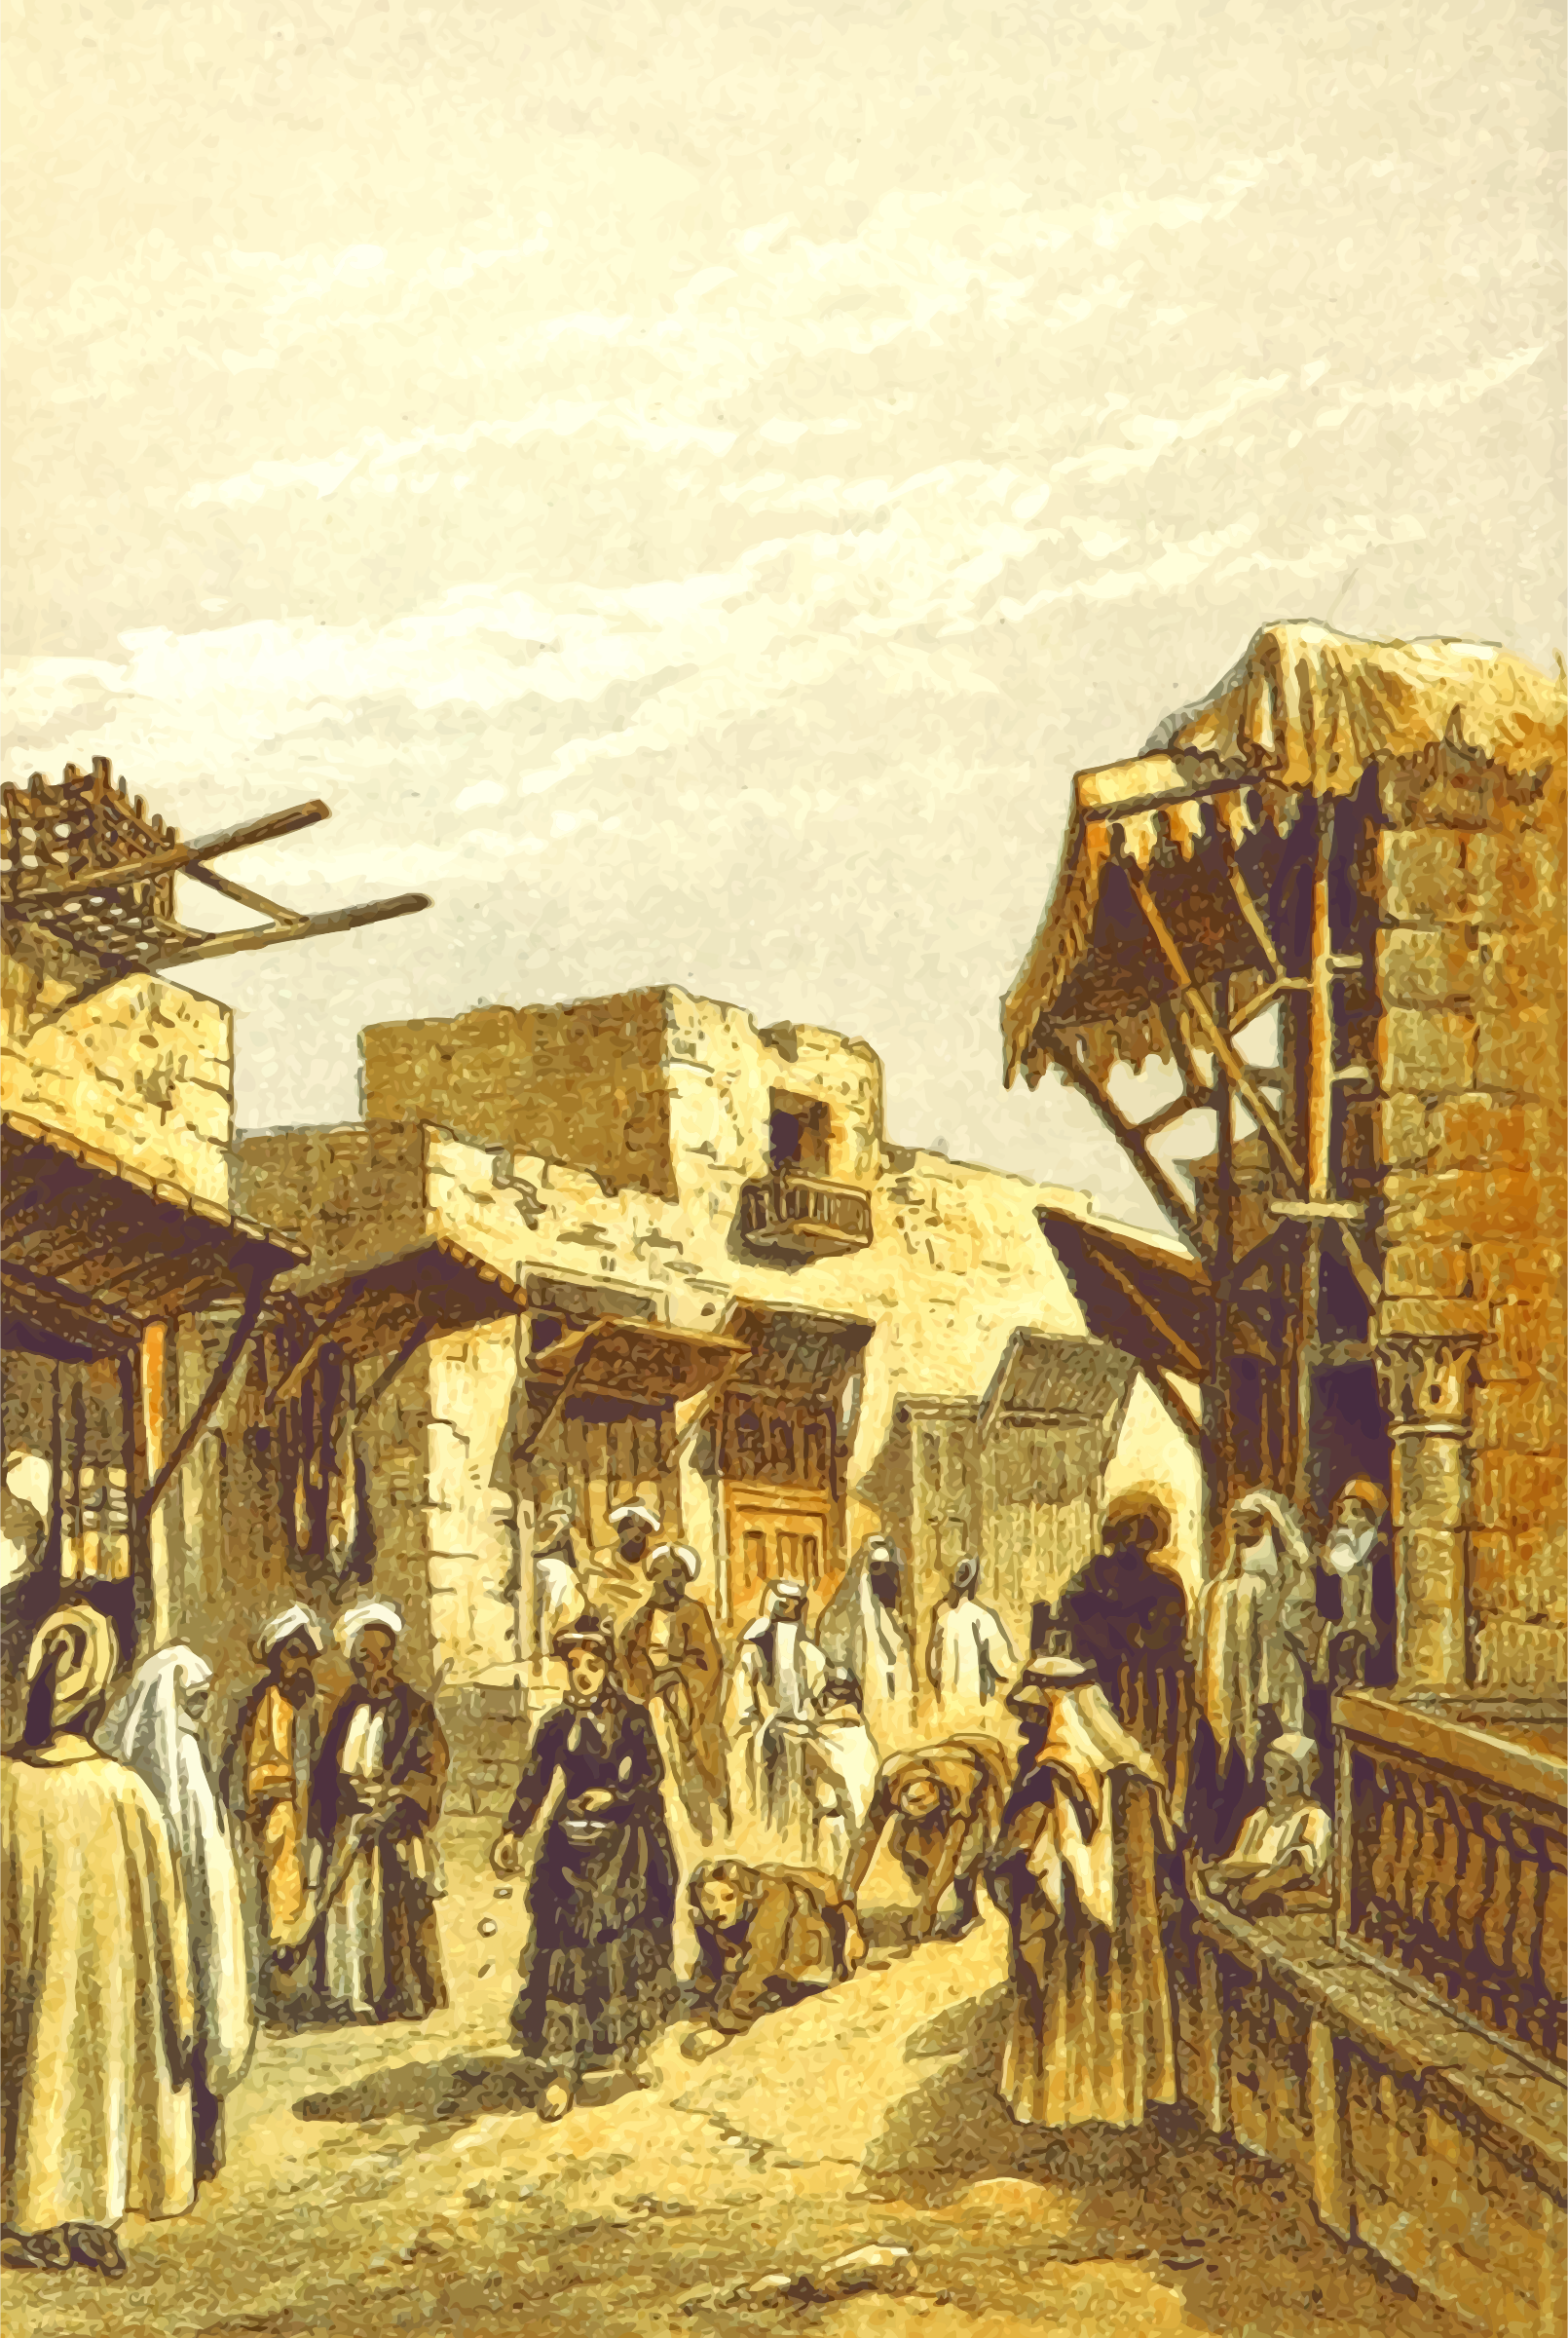 Middle Eastern scene - Pilgramage in Jerusalem by Firkin